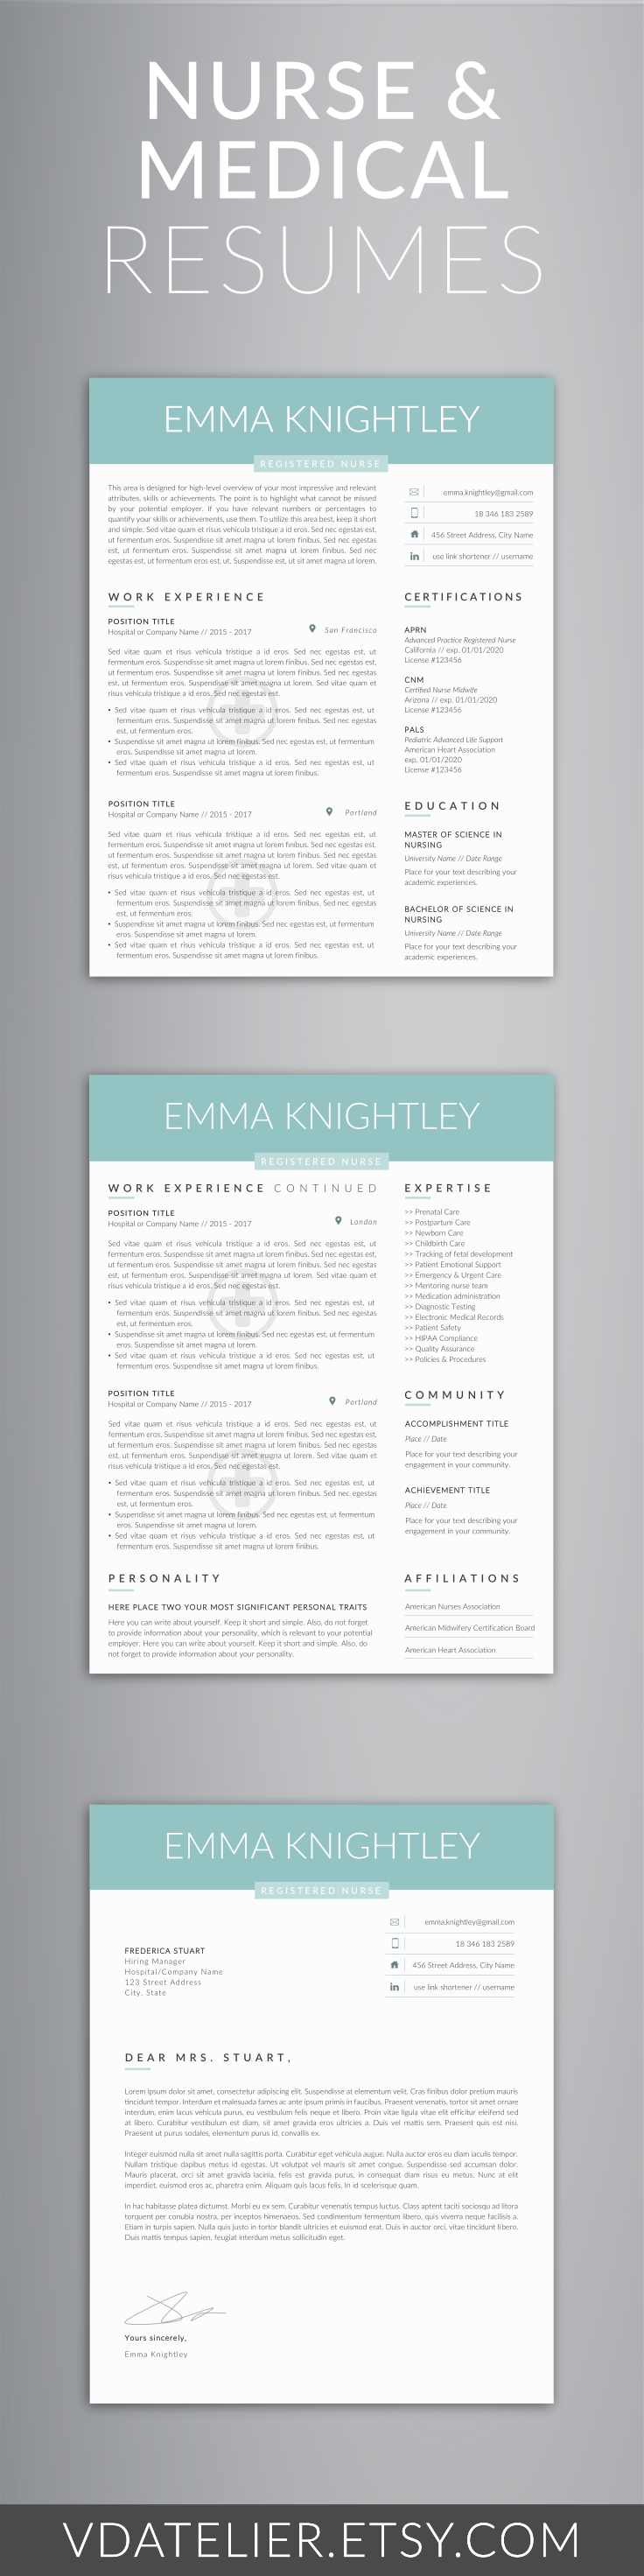 Nurse Resume Template 5 Pages | Nursing Resume - Registered Nurse CV ...